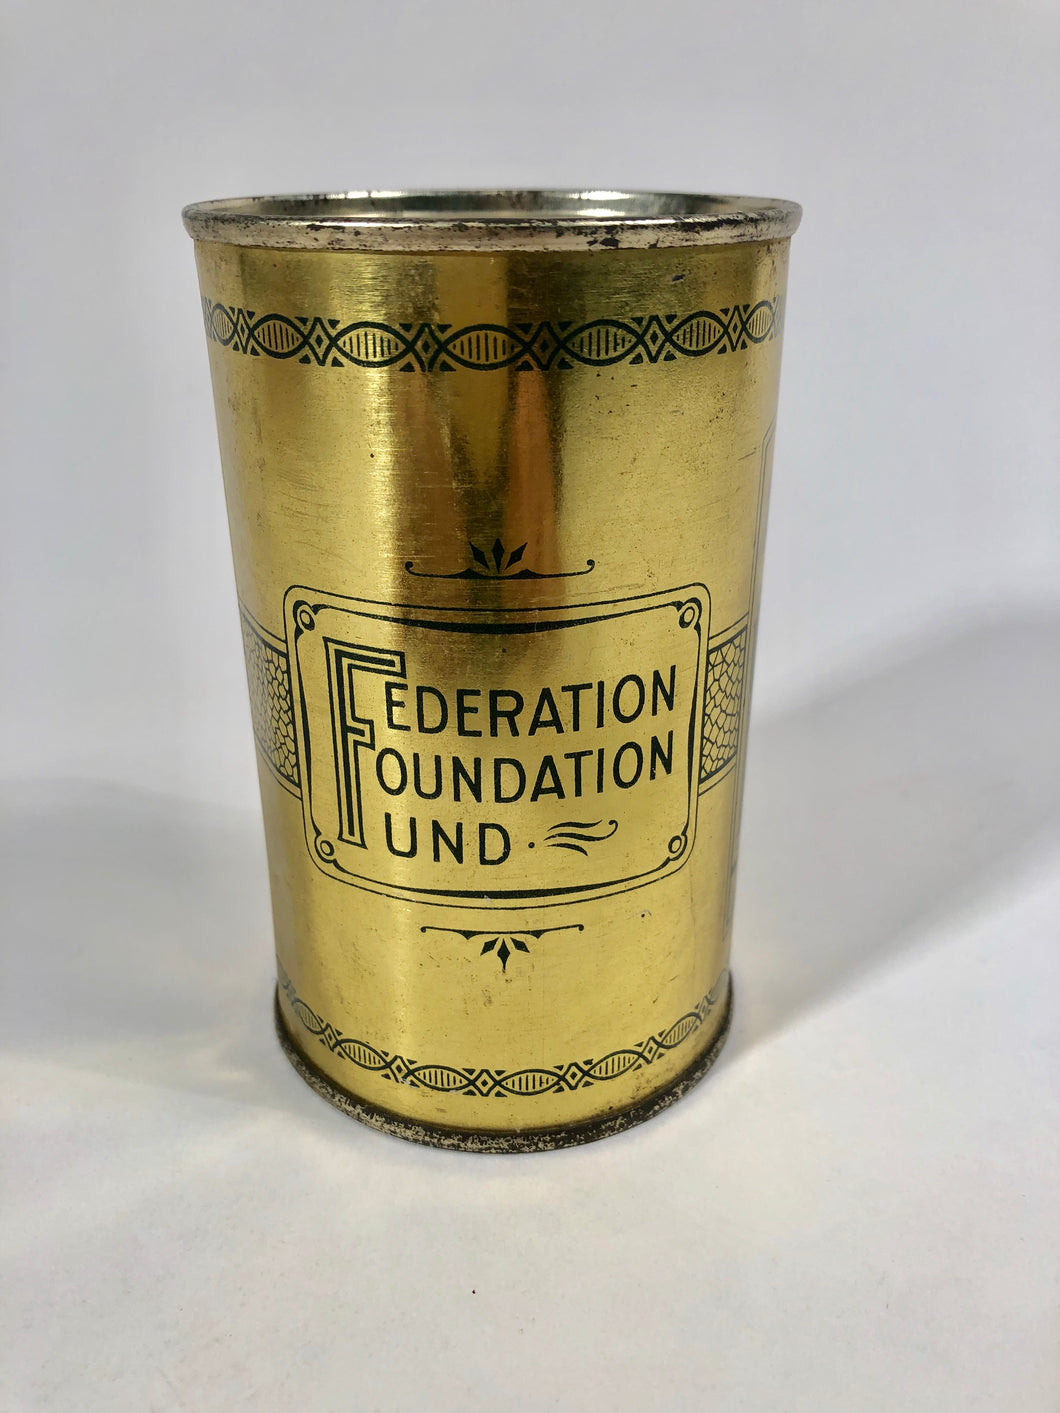 Federation Foundation Fund,